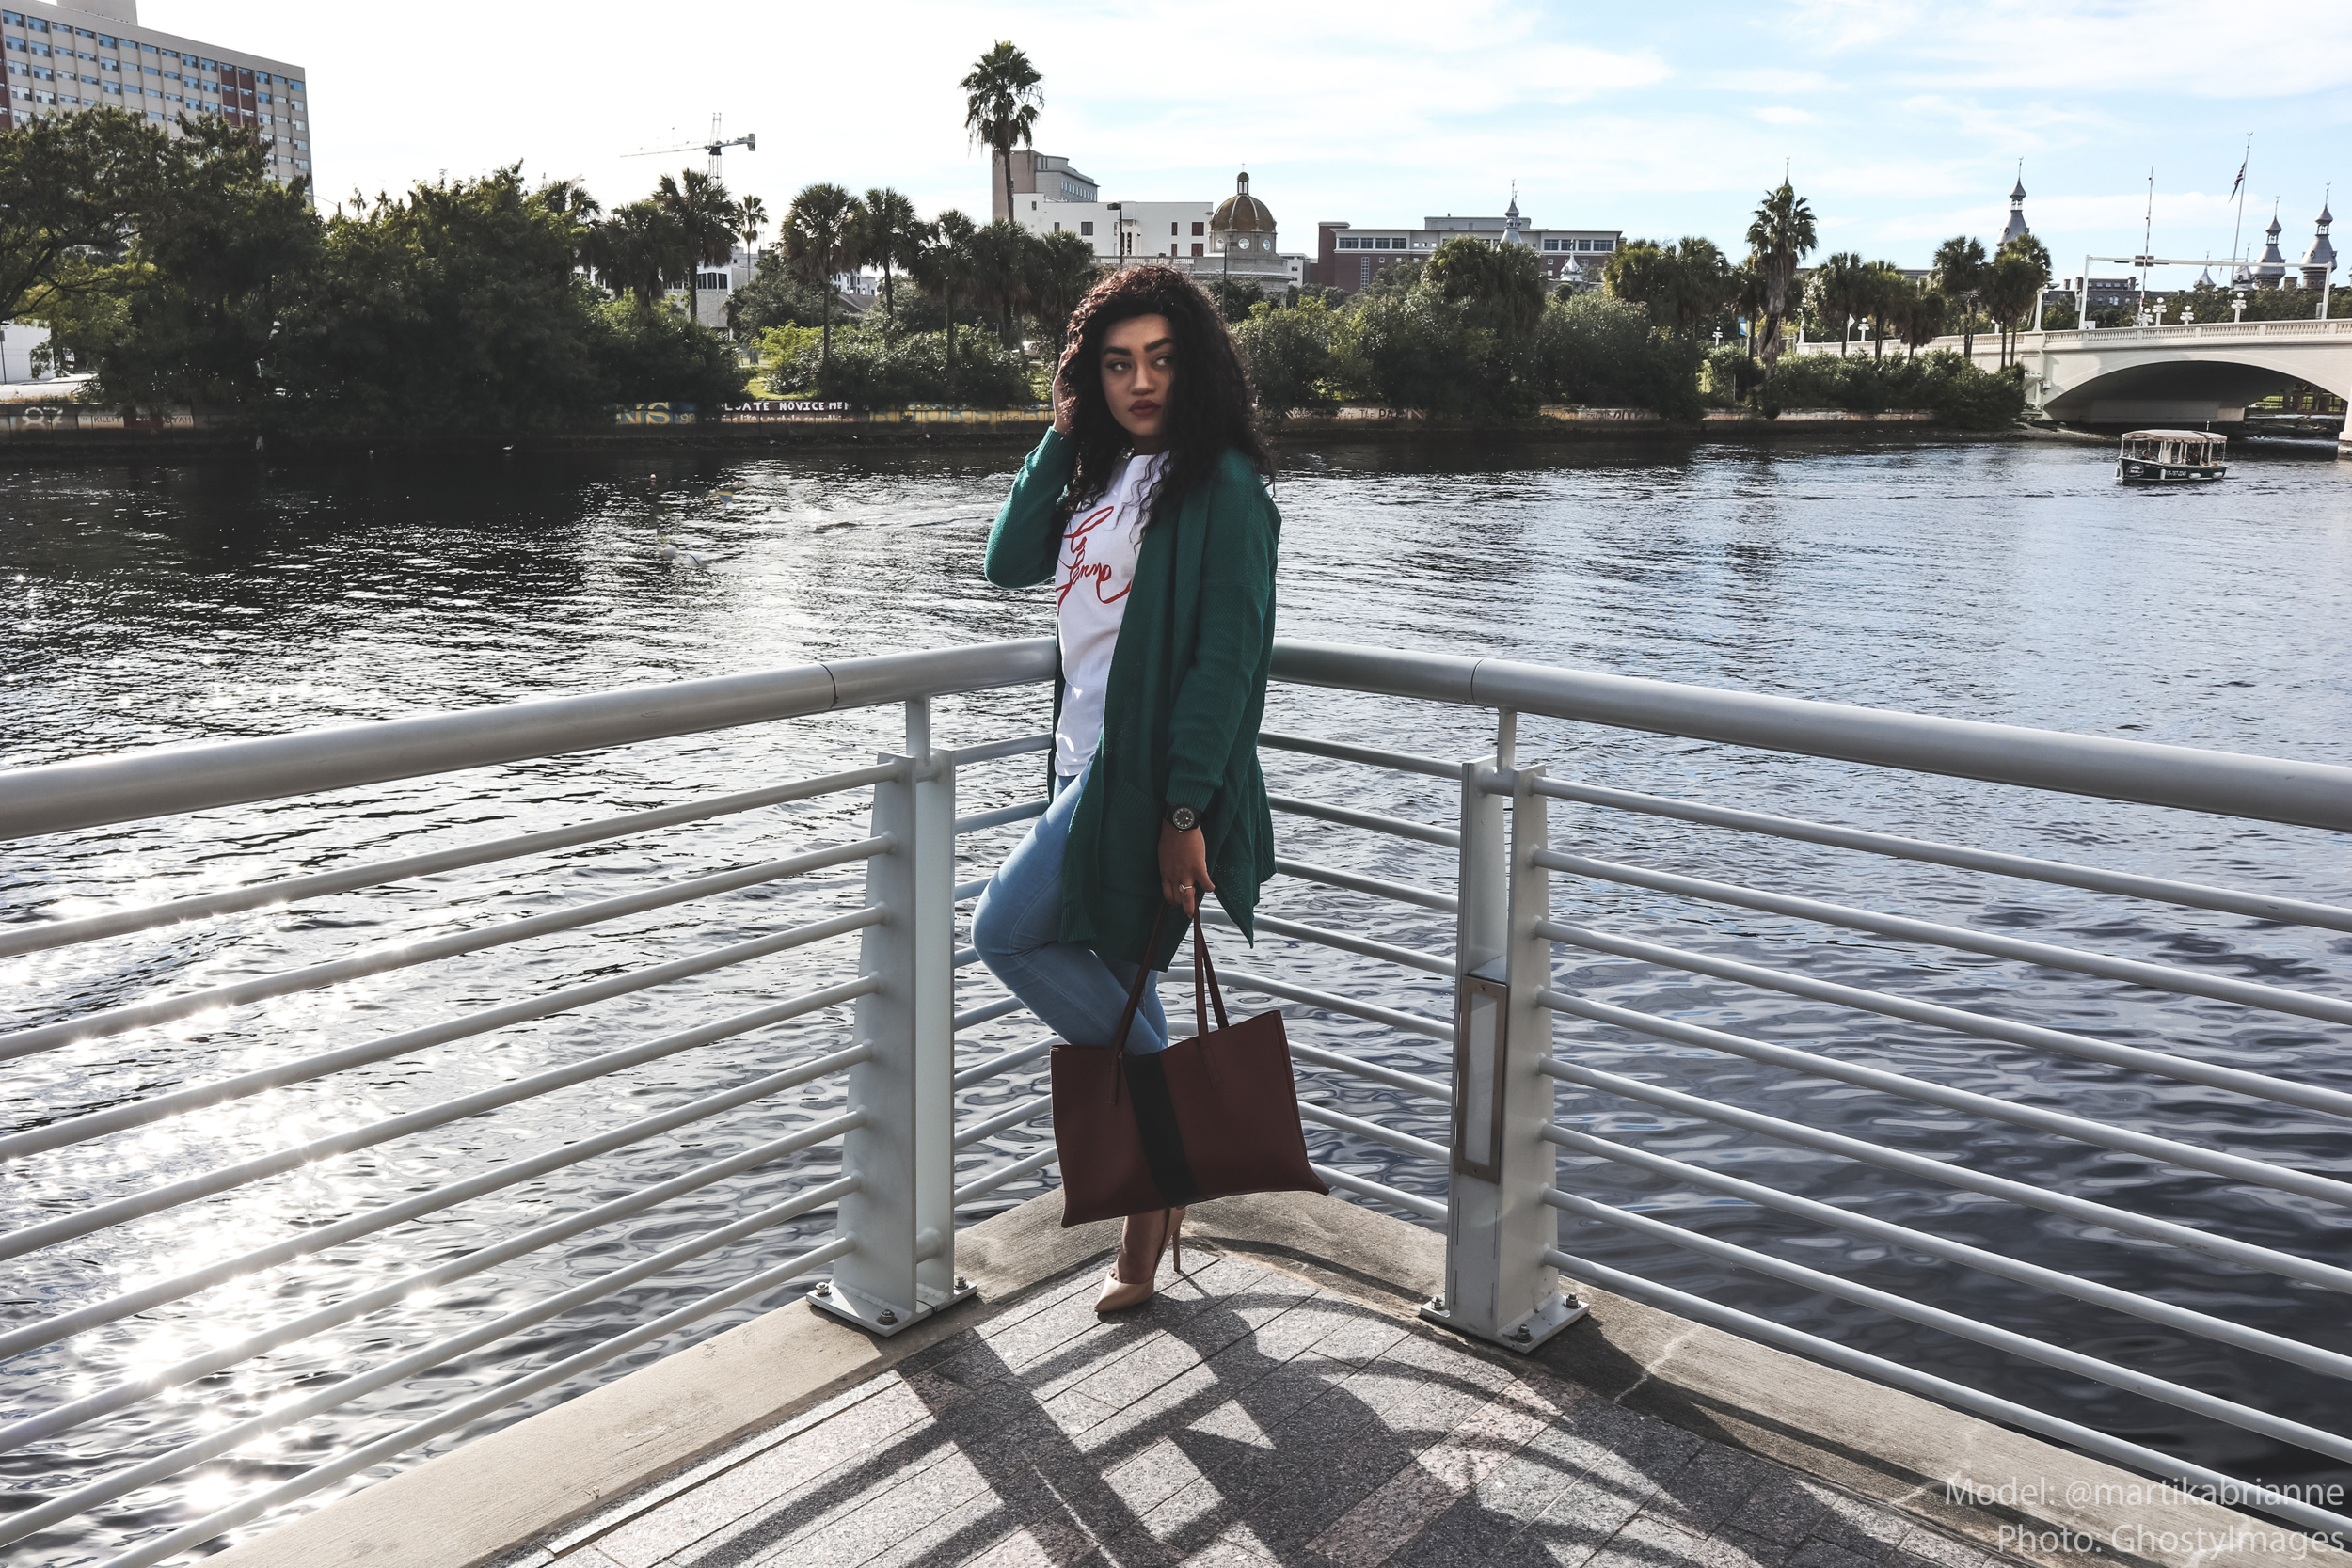 Archy Cardigan - Who doesn't love a good cardigan? Spice up any look with this Must-Have essential! Available in various colors. Color: Teal GreenPaired with my Fashion Nova Jeans, Vince Camuto Luck Tote, Steve Madden Nude Heels, & Treehut Co. Ebony Theo Blue Watch.Photography: George Jones